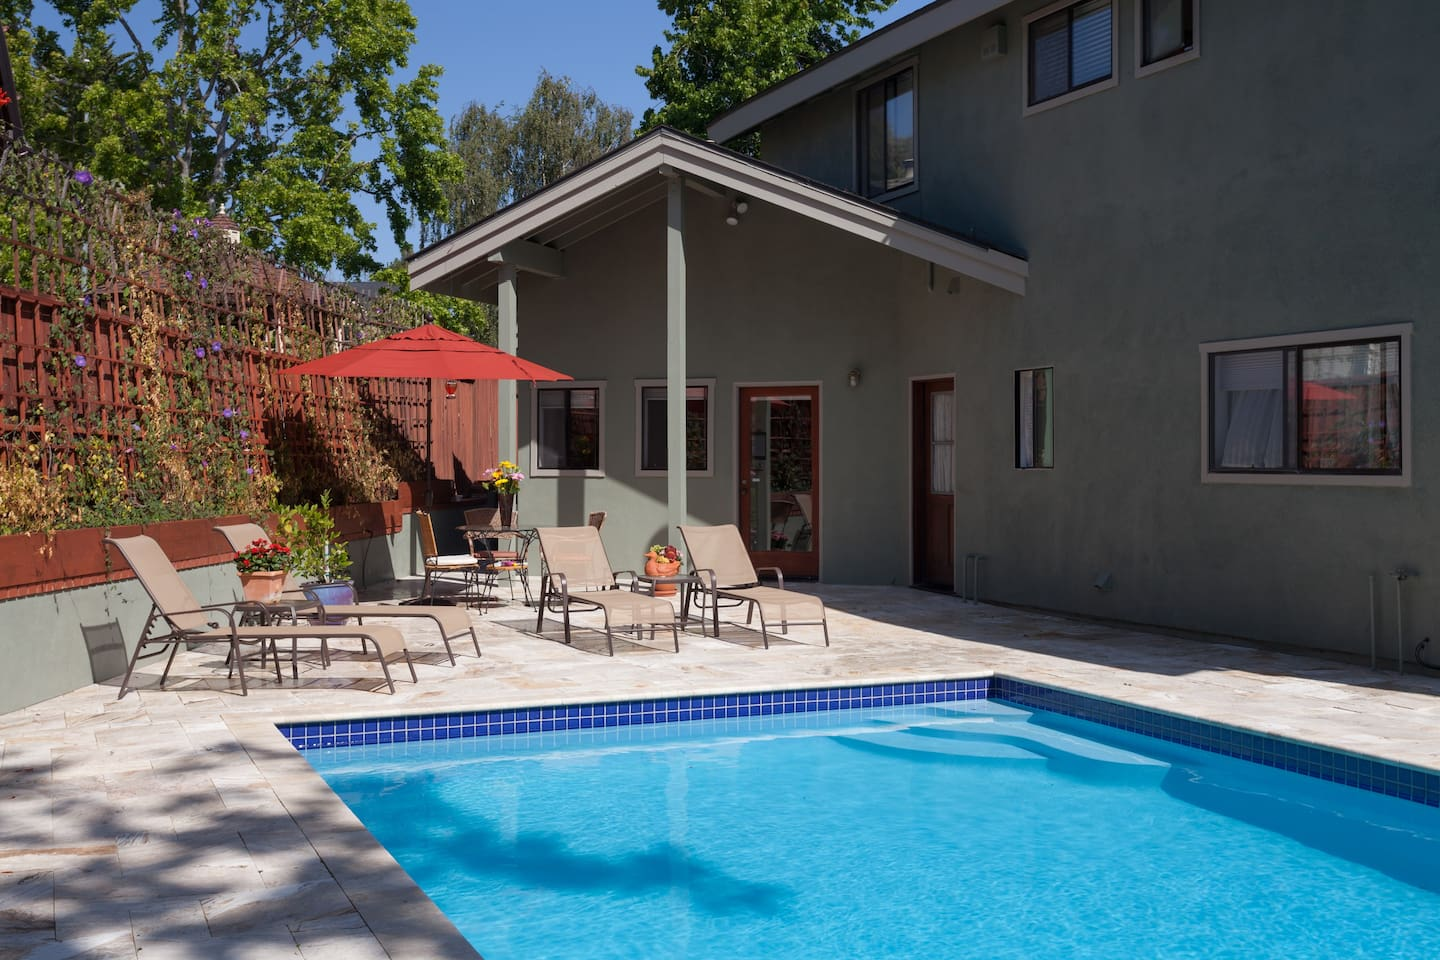 Swim in the warm pool & slide May-September, BBQ & dine on your secluded patio!